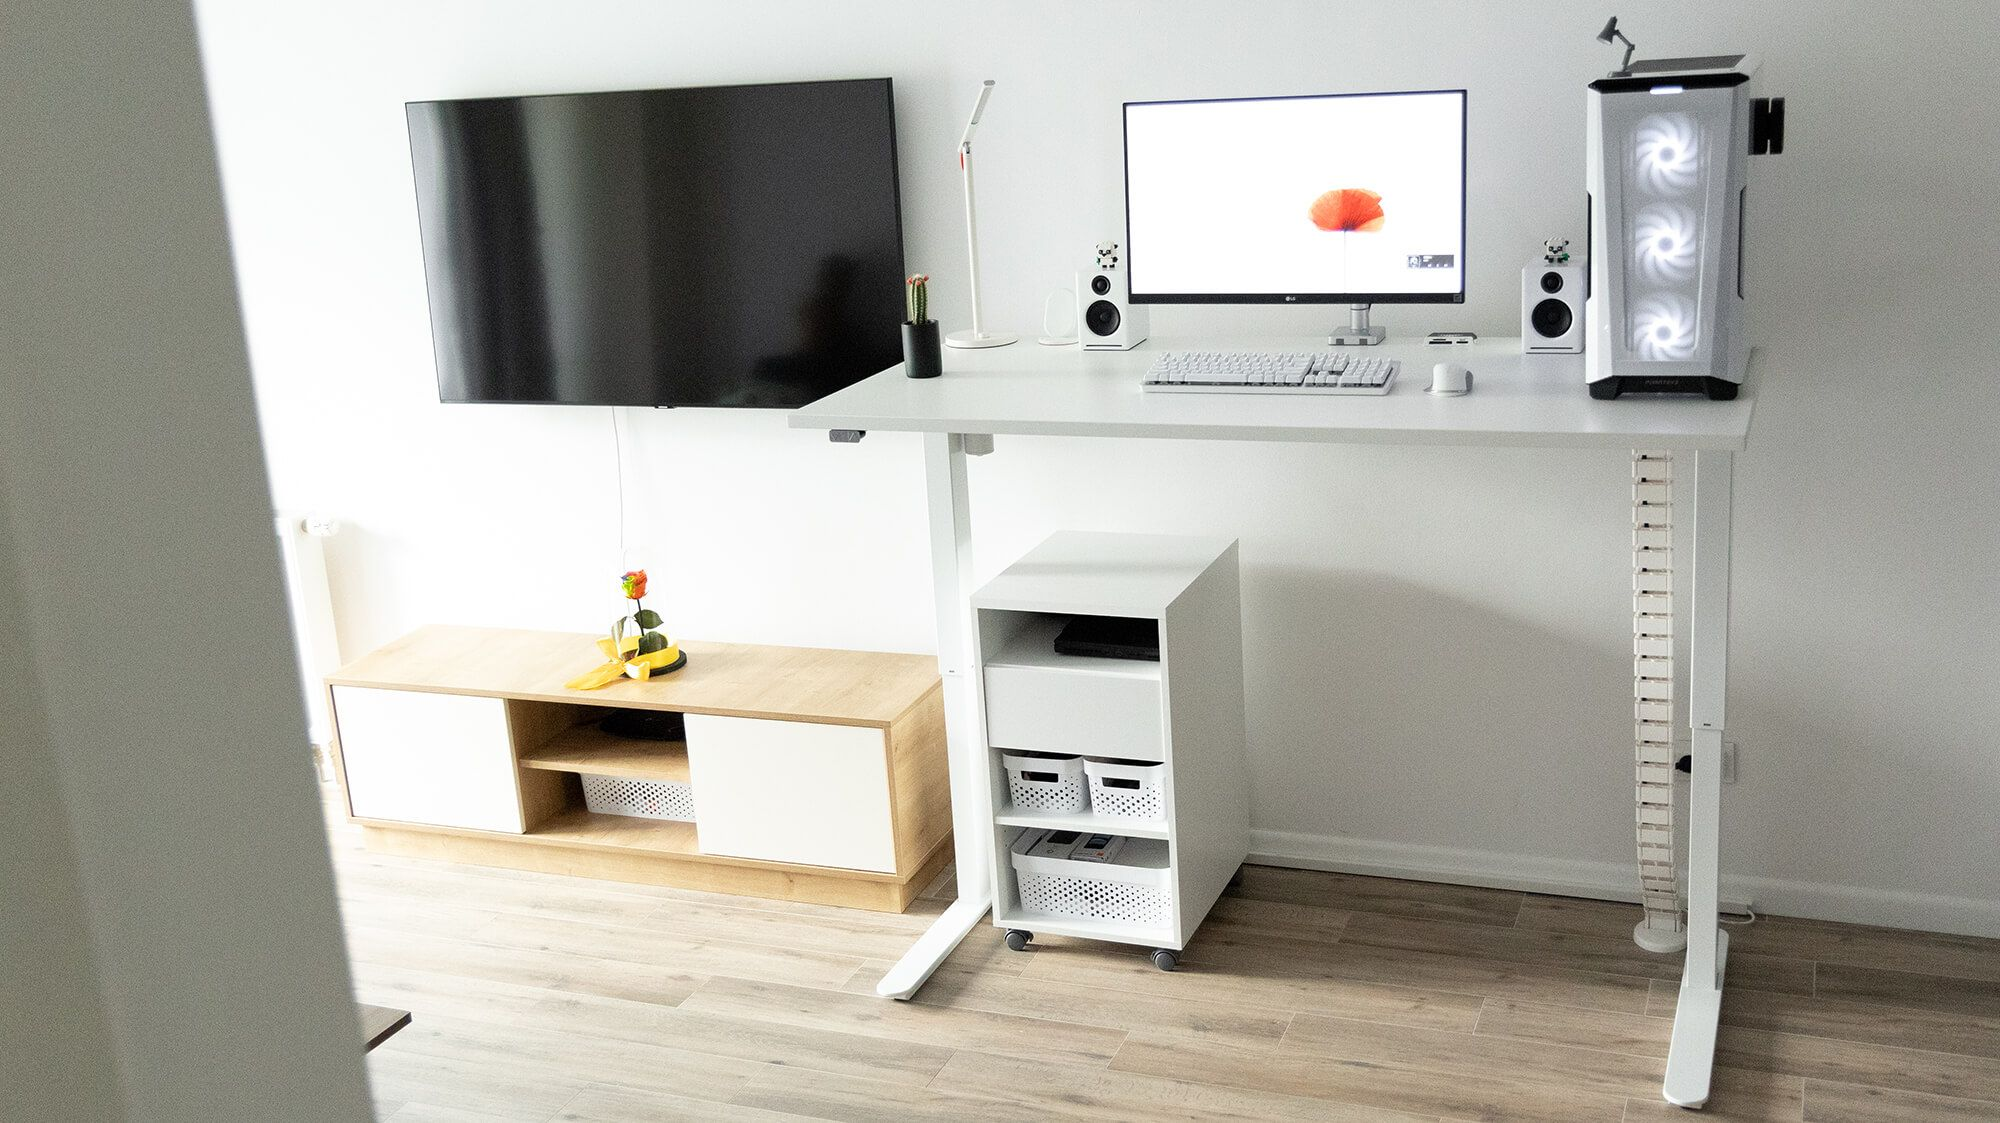 """The desk's model is SLANGERUP from the global retail chain Jysk that sells Scandinavia-inspired furniture. """"There's nothing from IKEA here"""""""